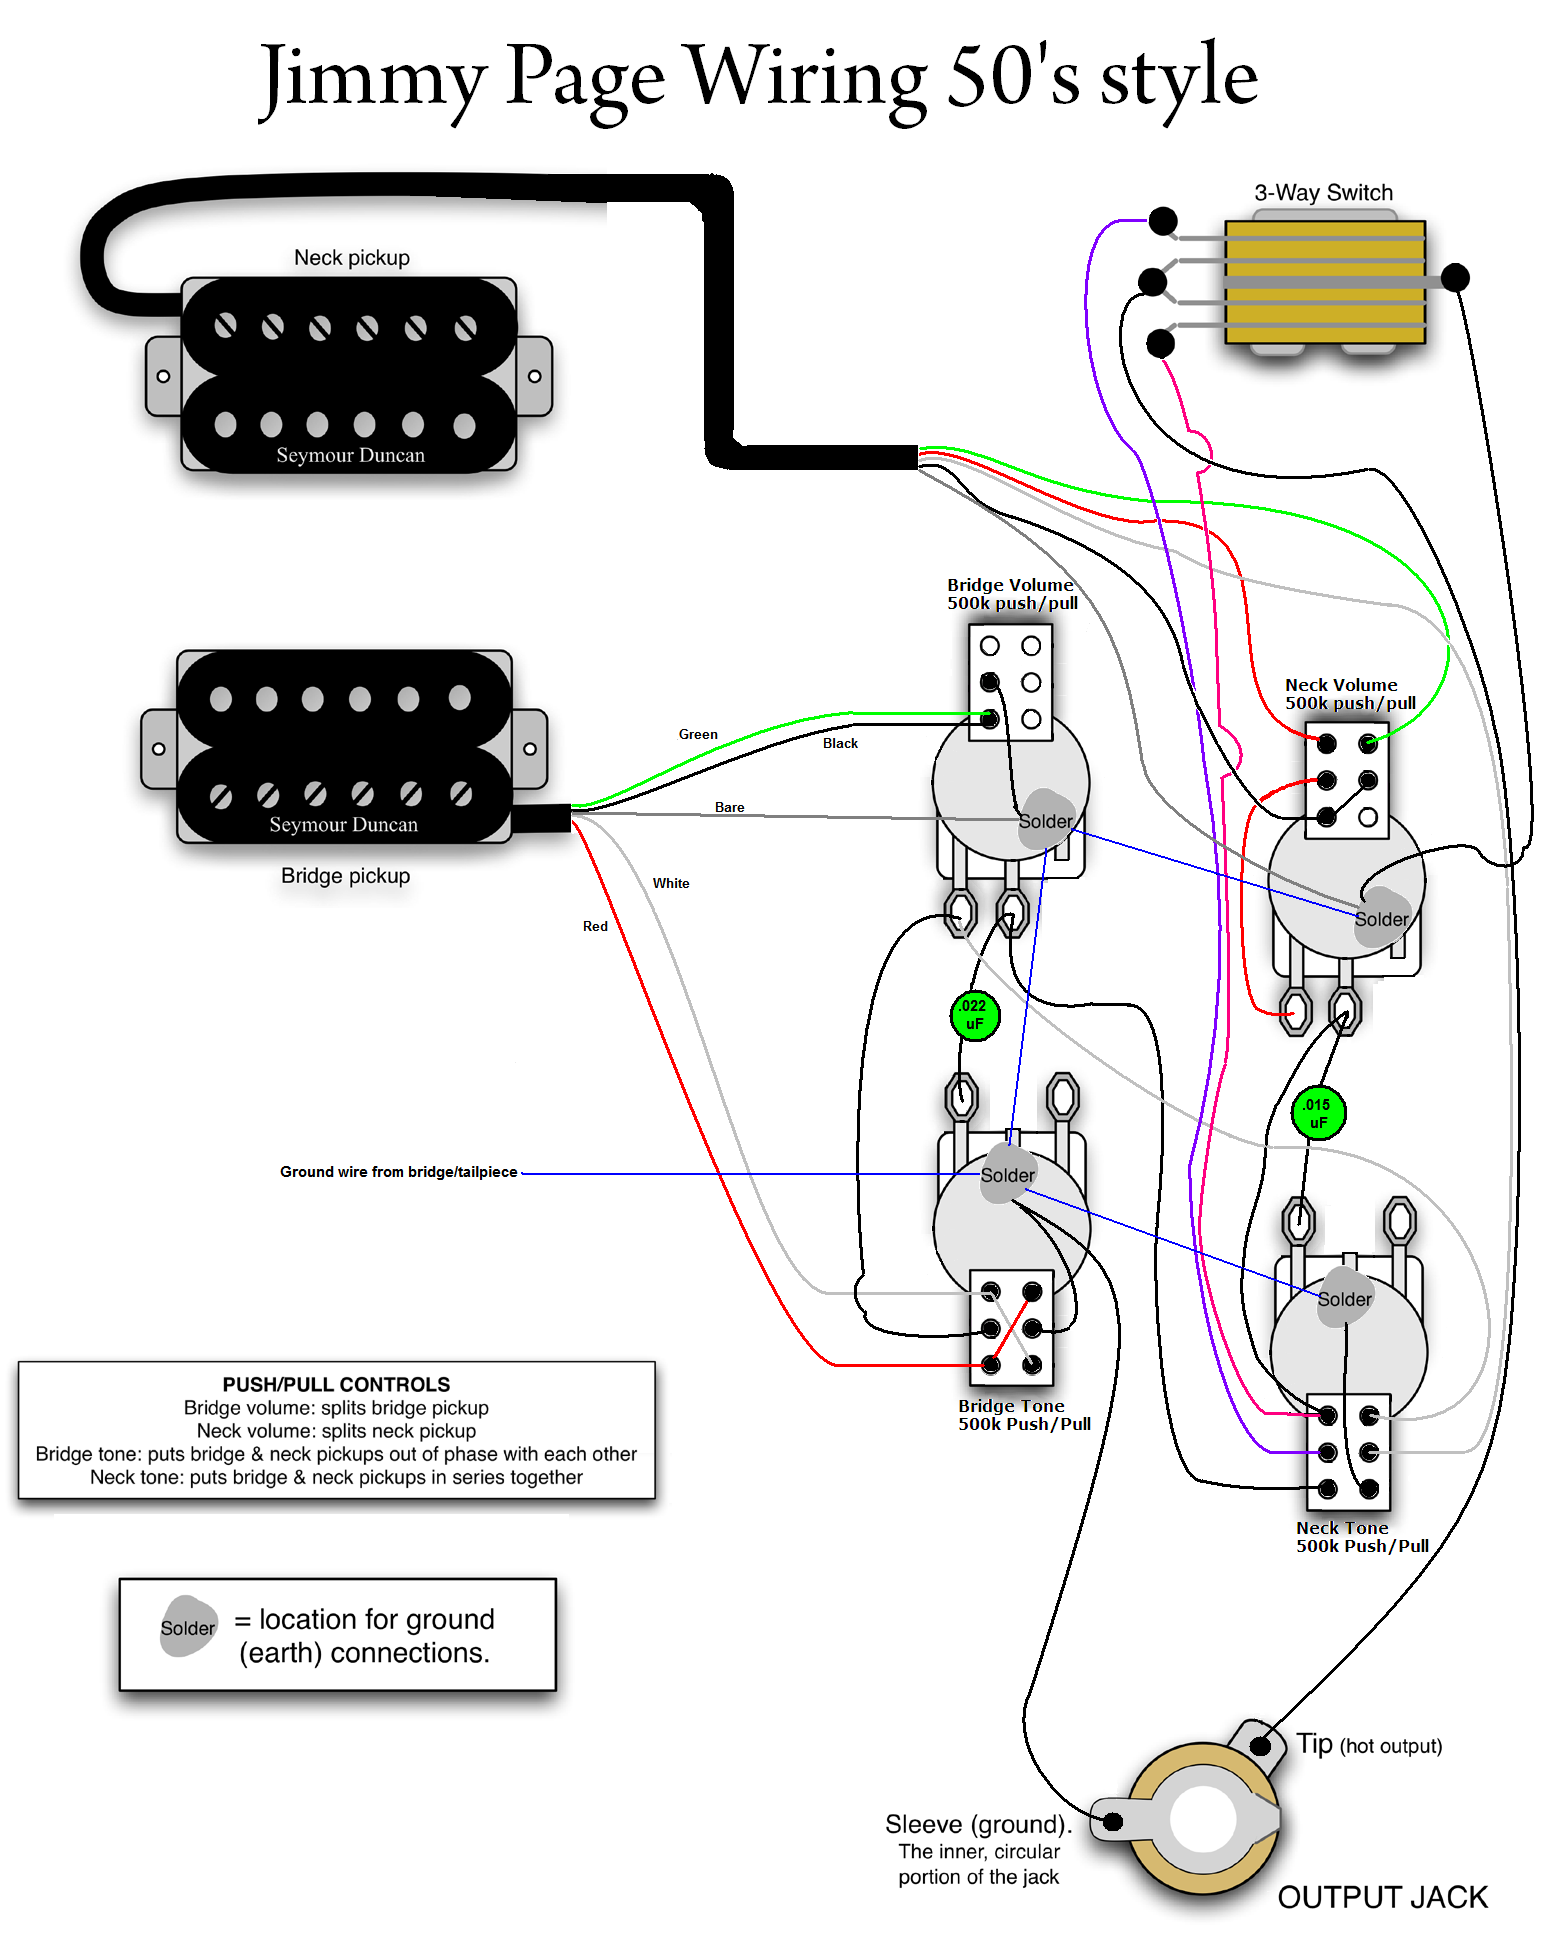 jimmy page wiring diagram coil split simple wiring schema gibson les paul wiring schematic push pull coil tap wiring diagram jimmy page [ 1563 x 1942 Pixel ]